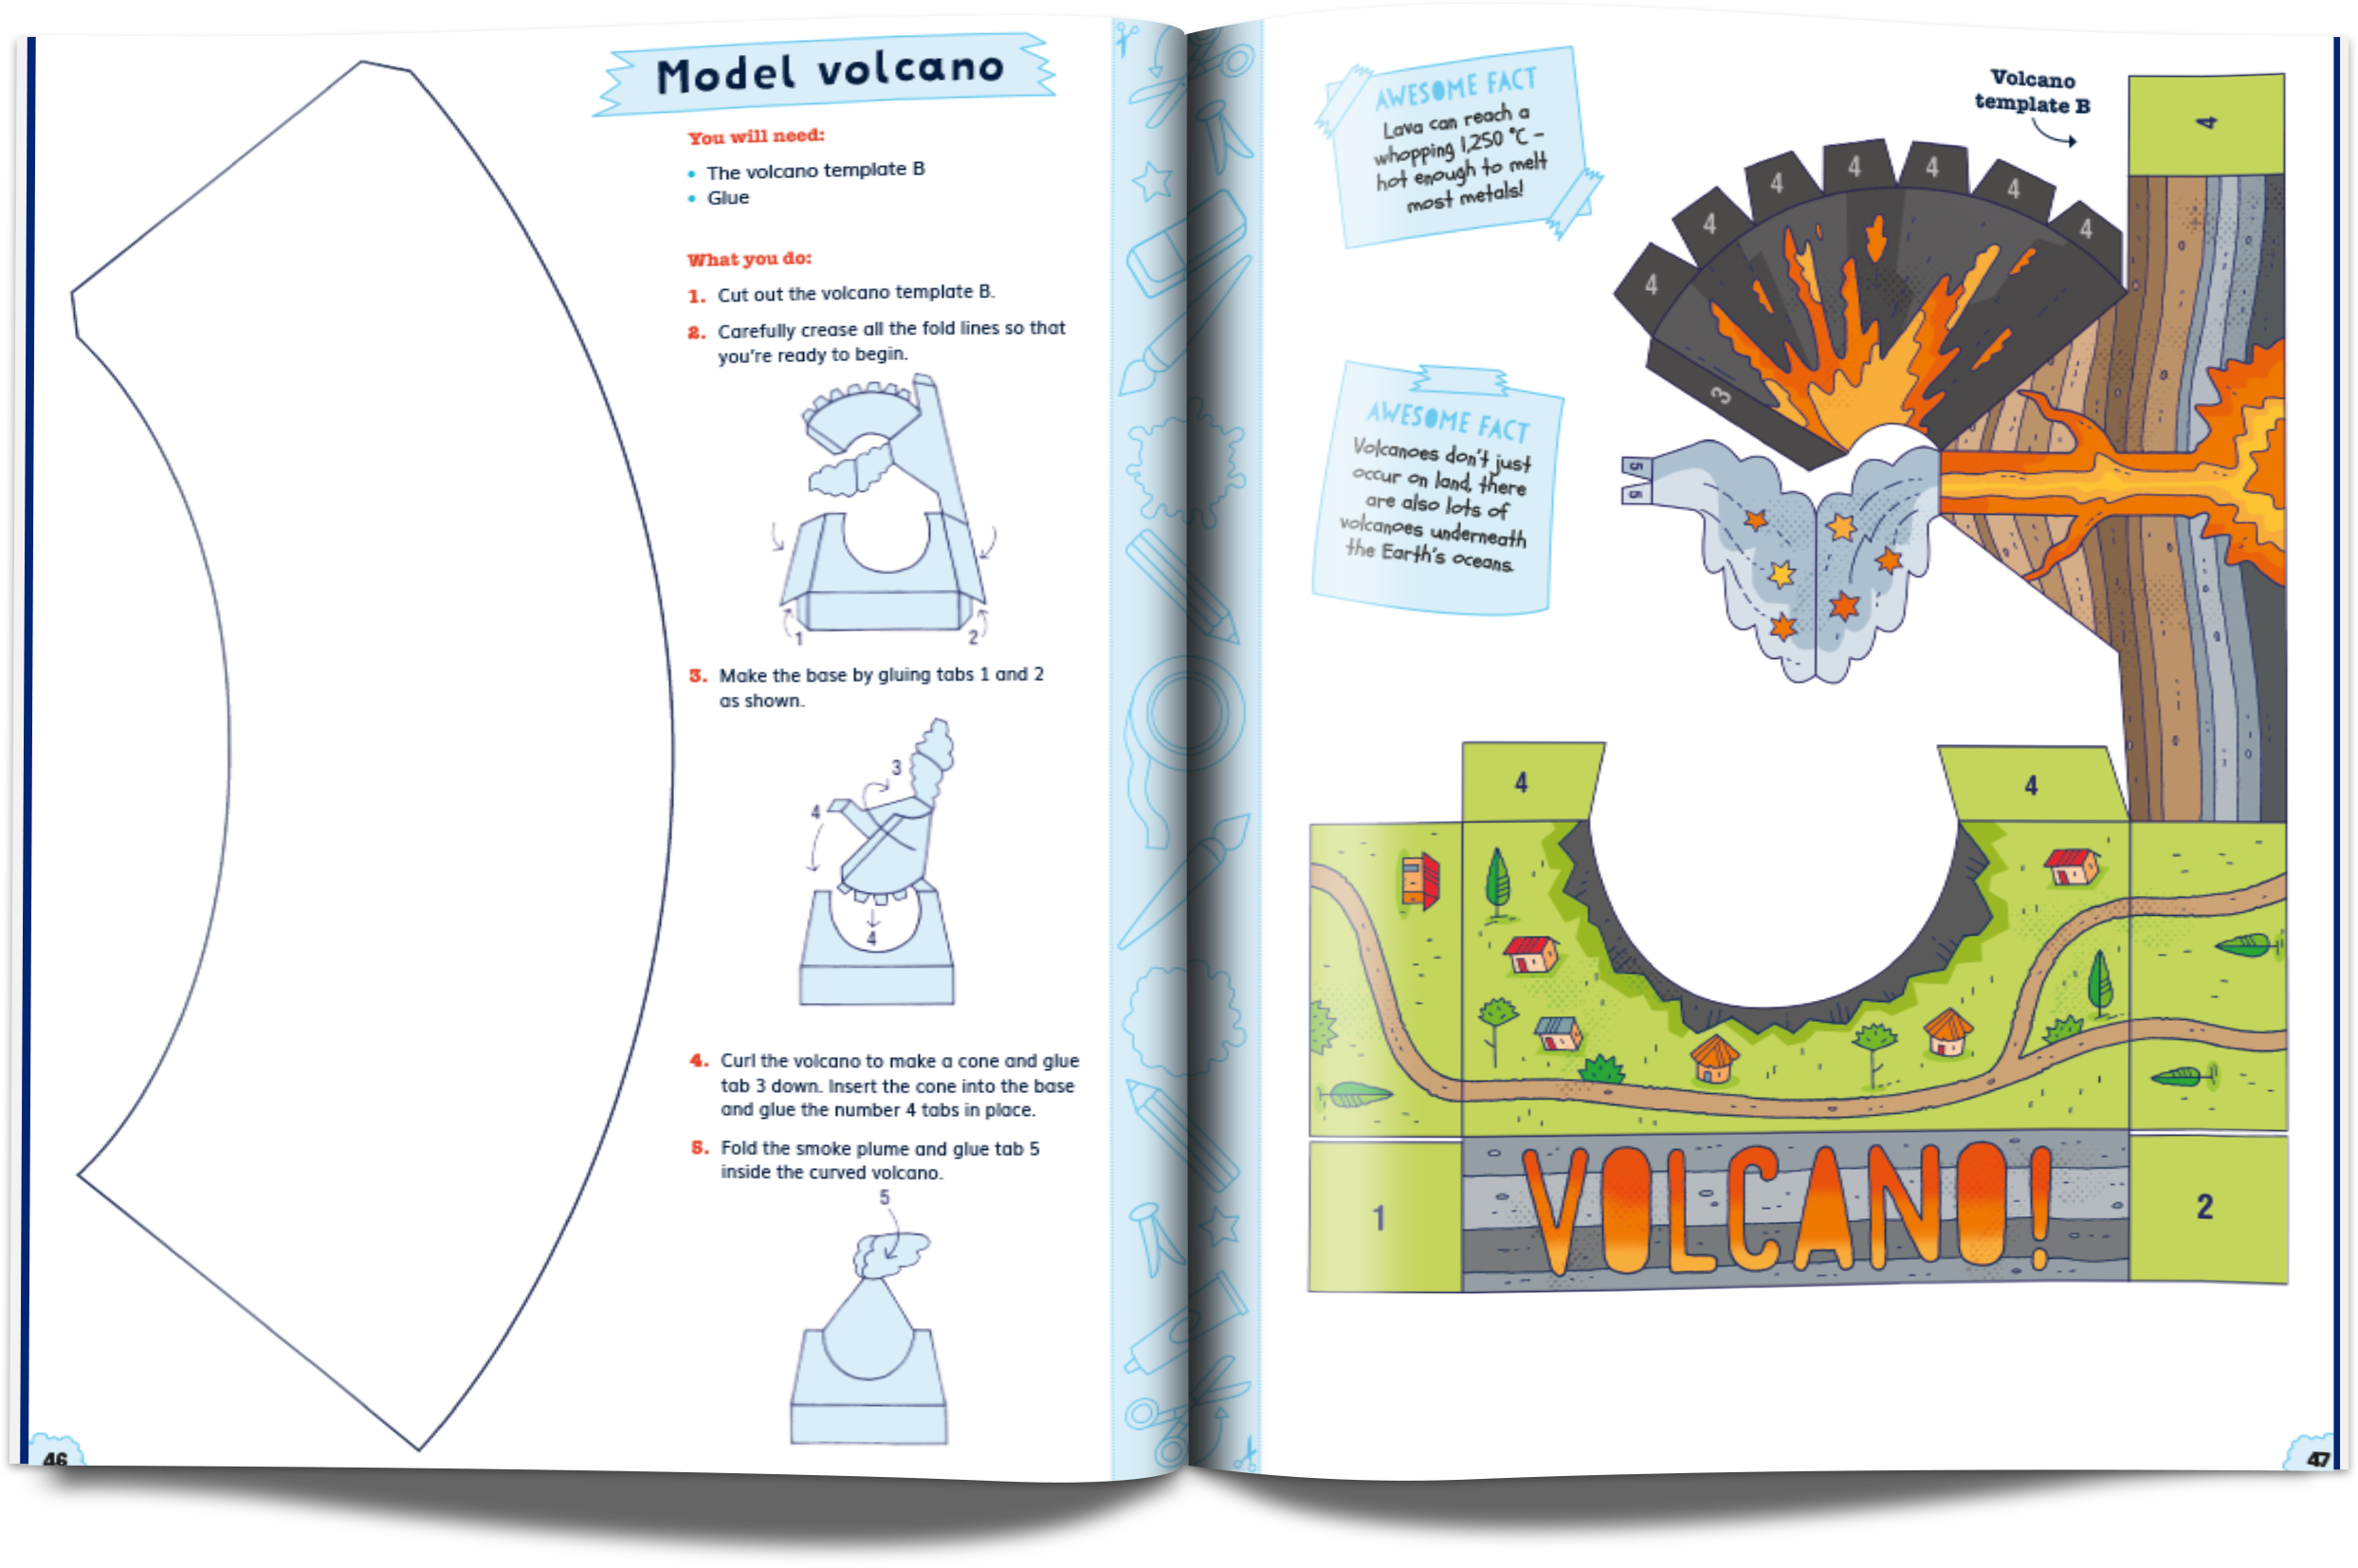 Snip-Out Science book spread